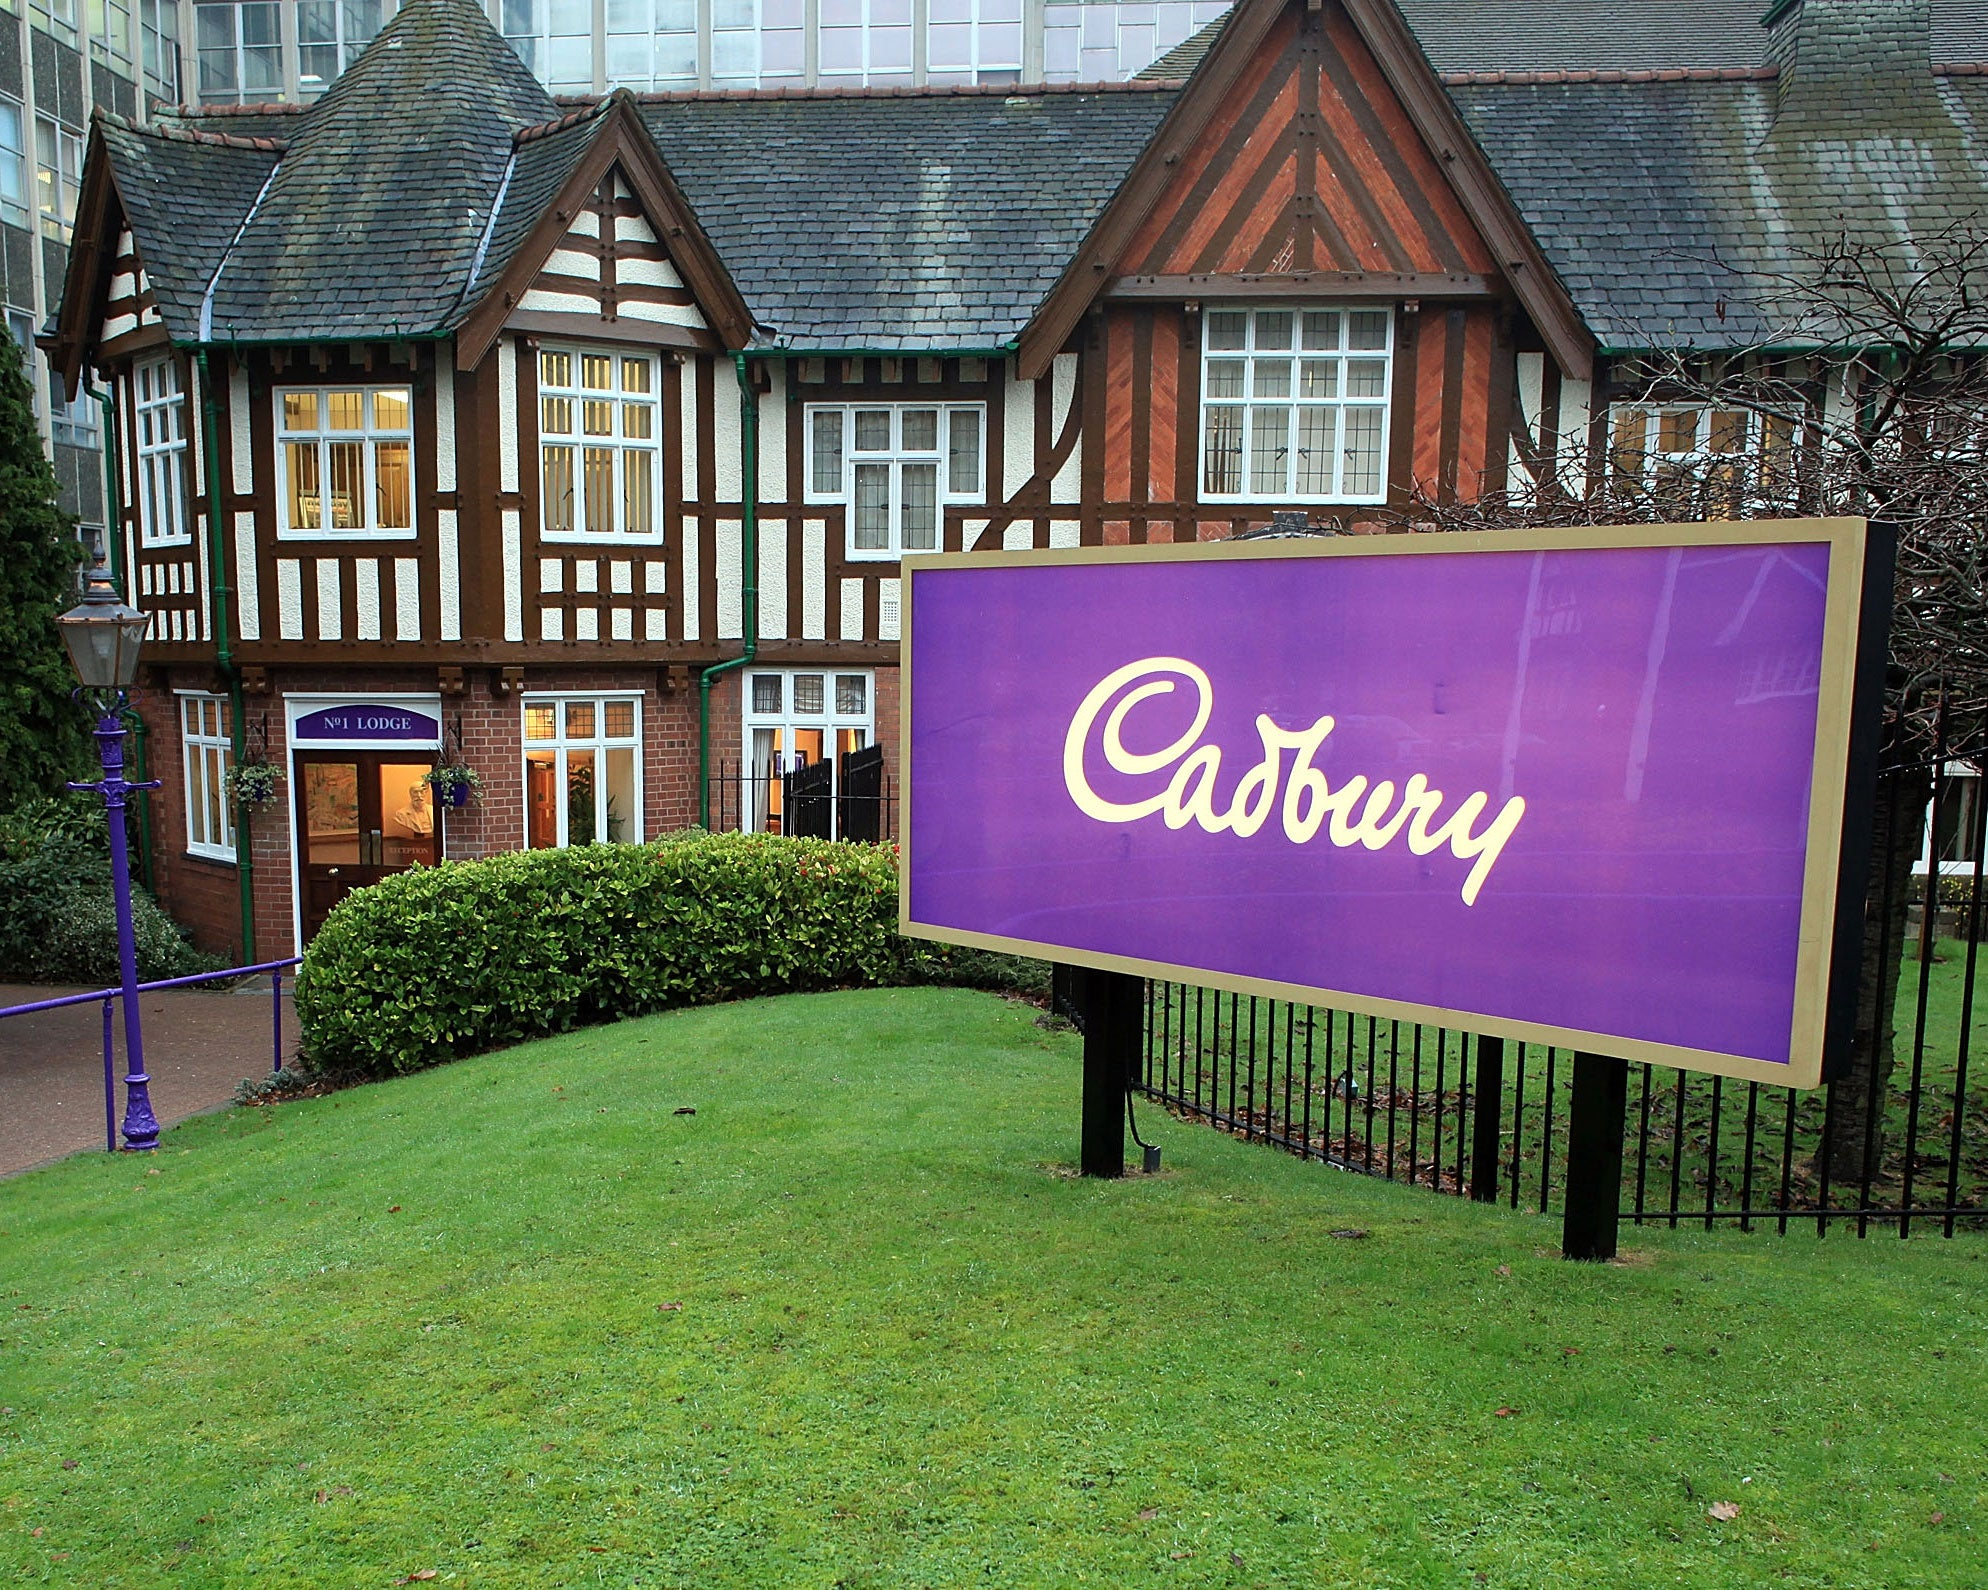 I used to work for Cadbury – this is what has really happened since …